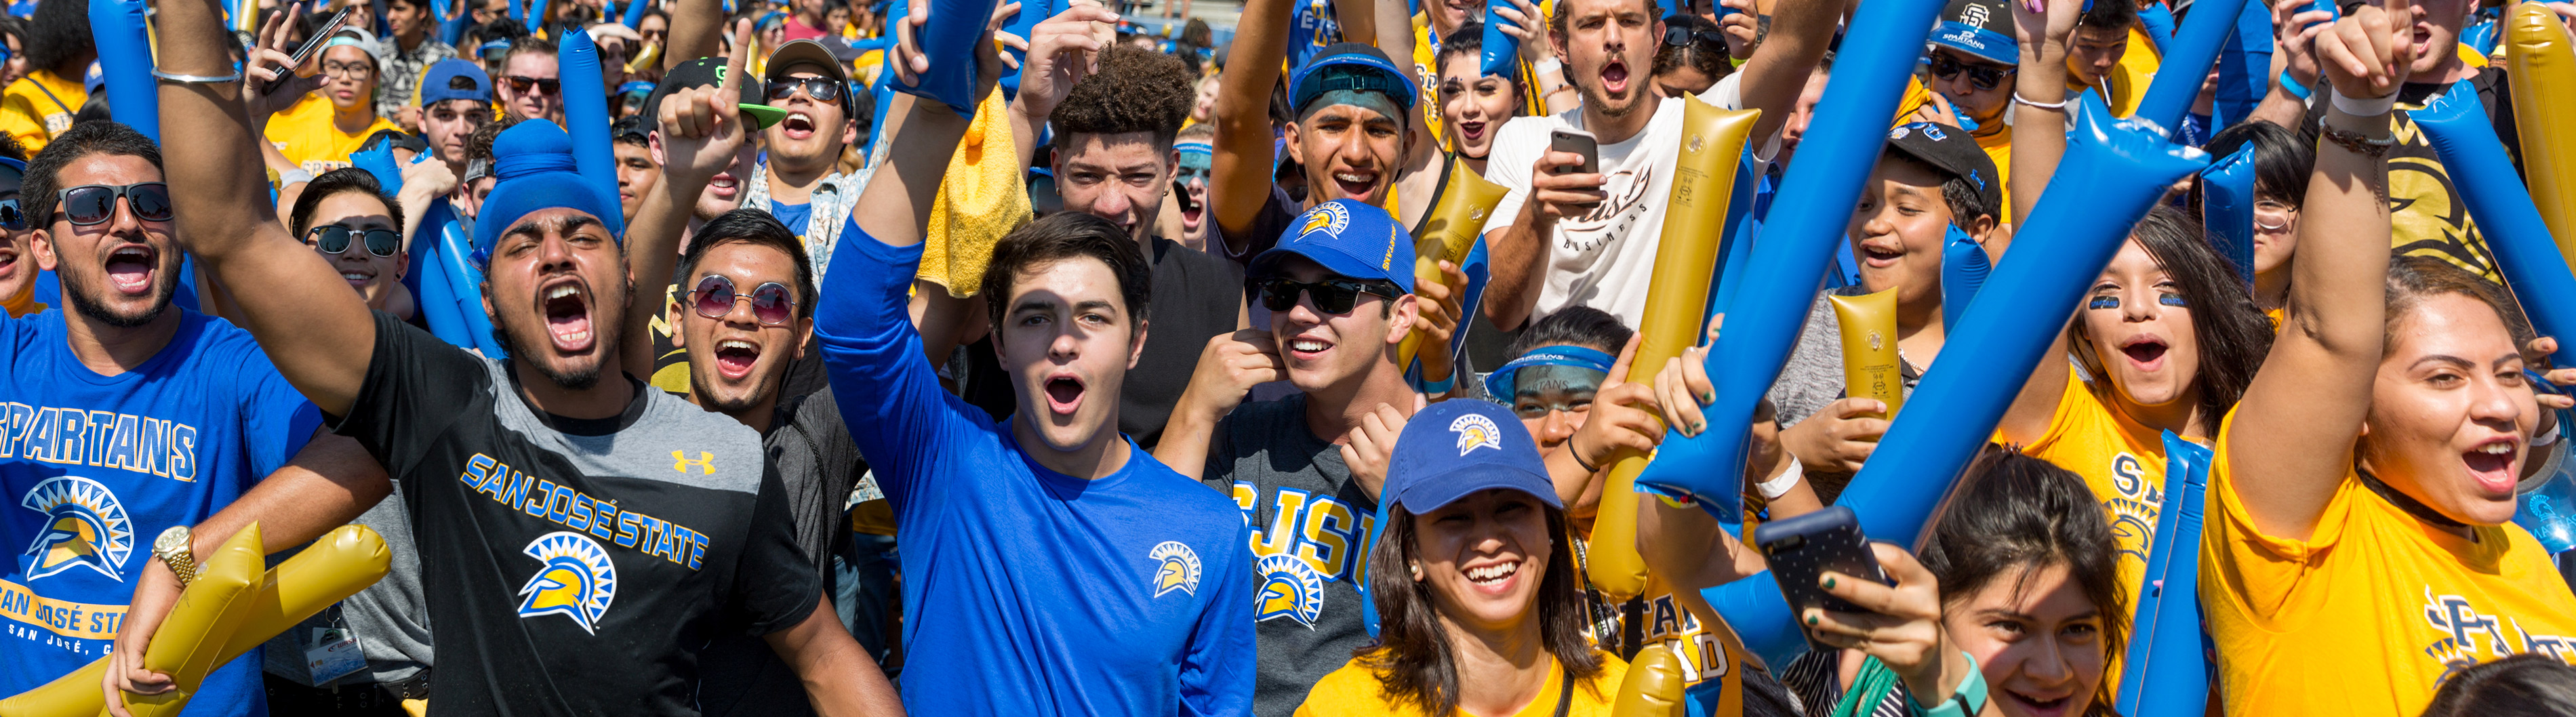 San Jose State Students